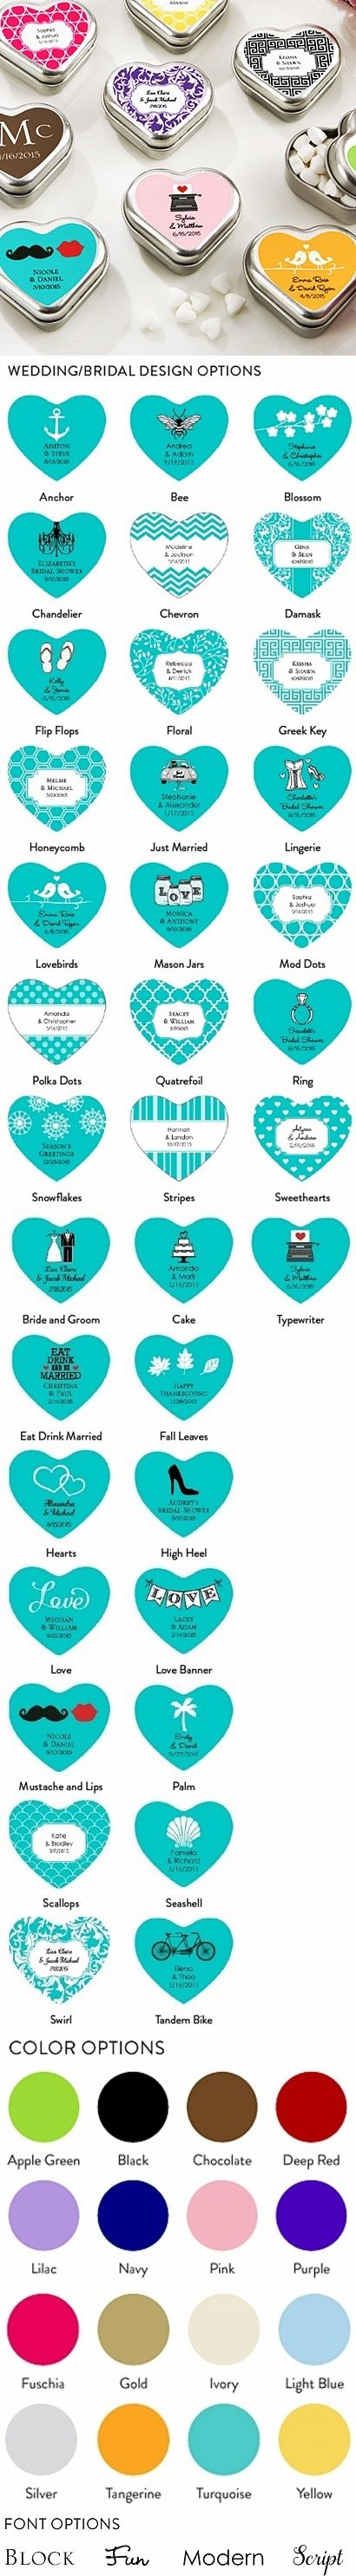 Personalized Heart-Shaped Mint Tins (Wedding Designs)